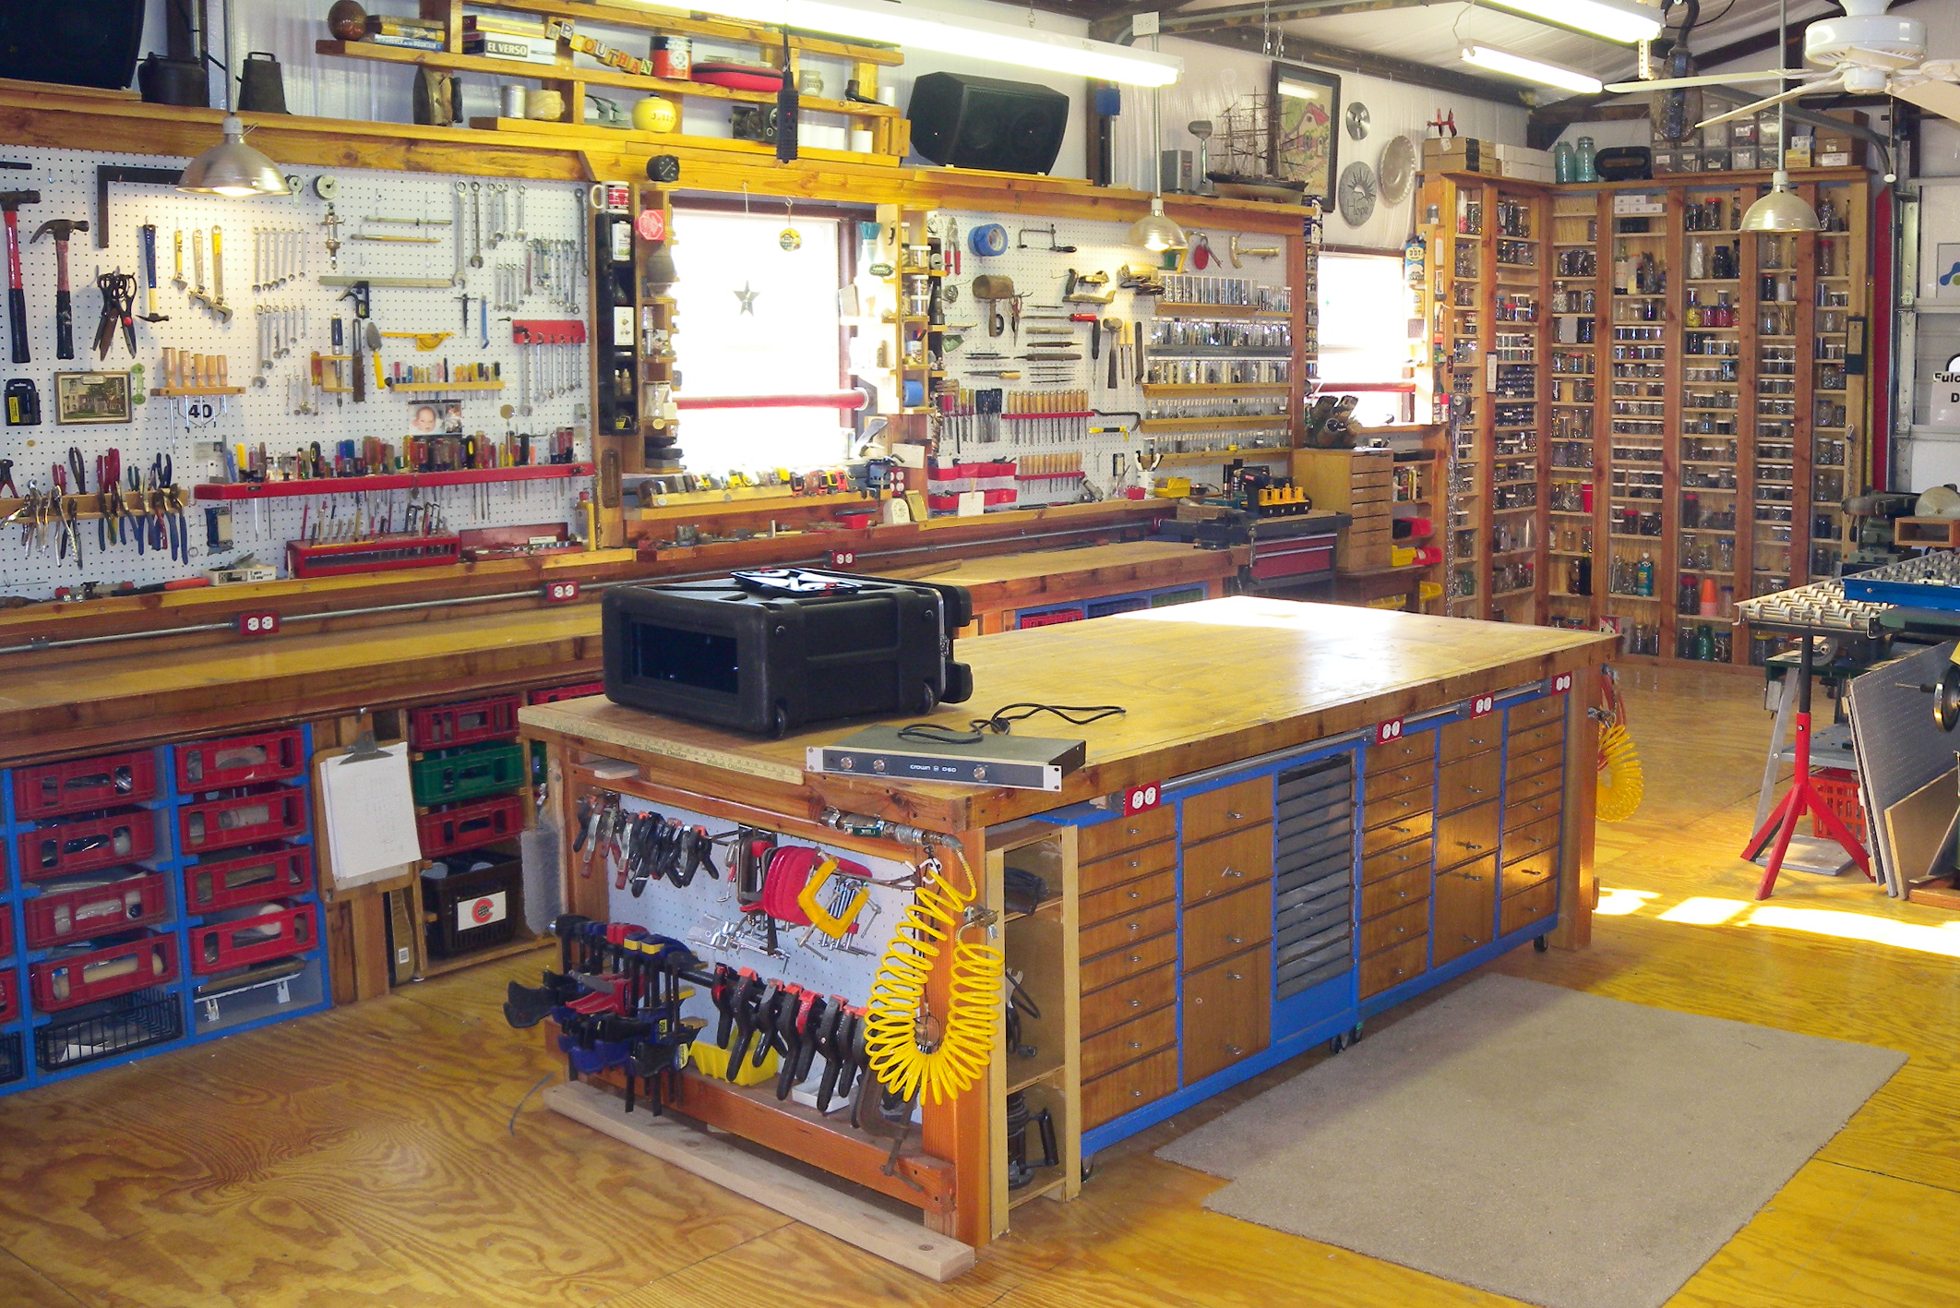 A large garage with multiple workbenches and a pegboard